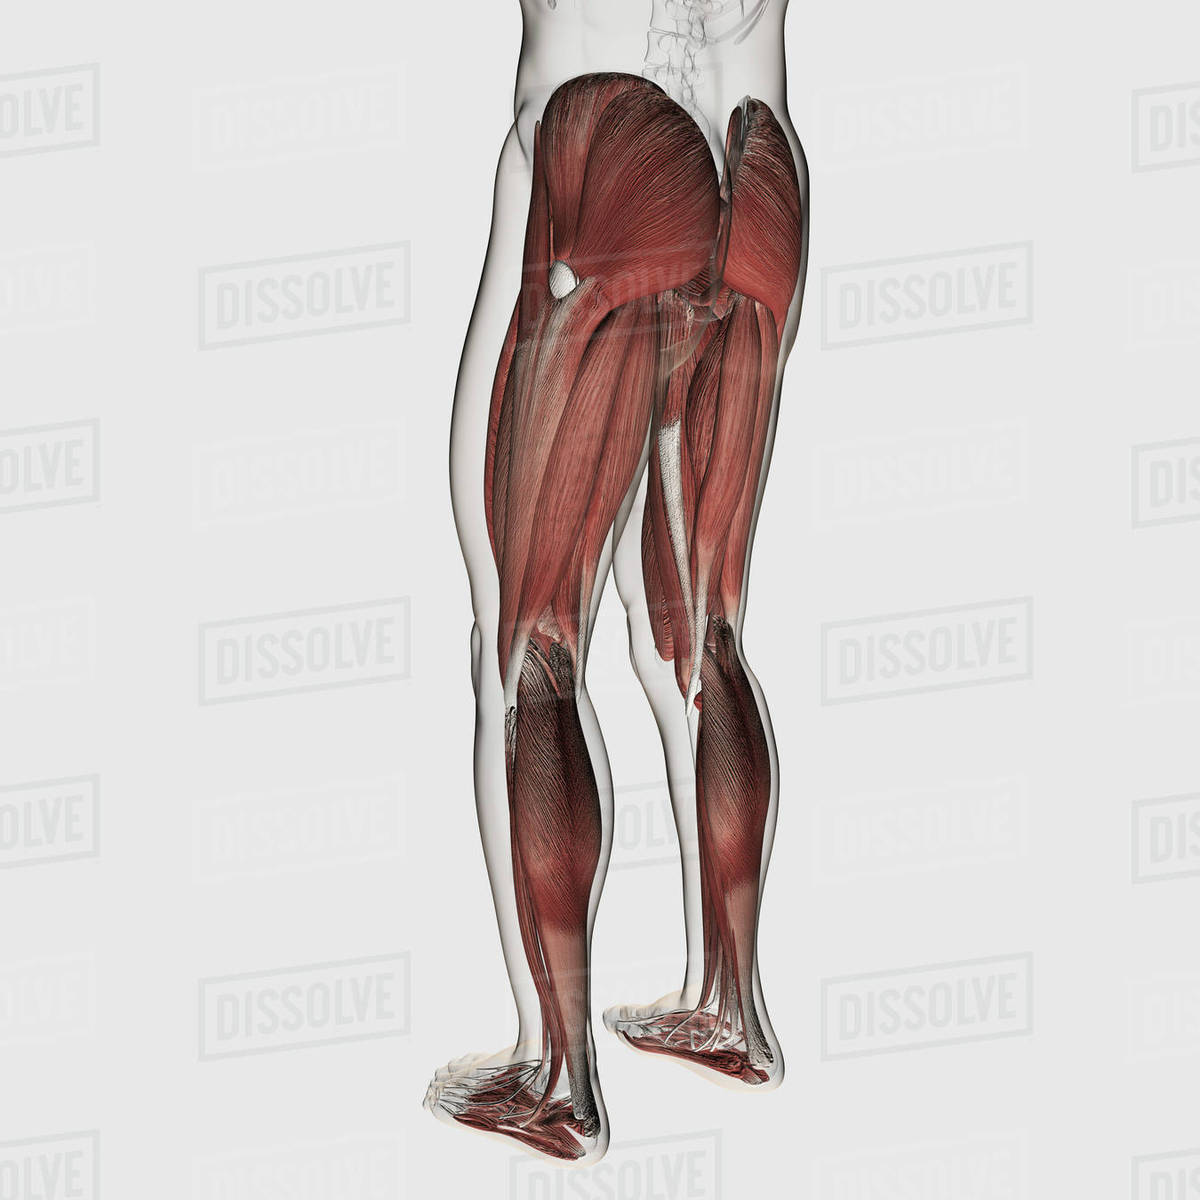 Male muscle anatomy of the human legs, anterior view. - Stock Photo ...